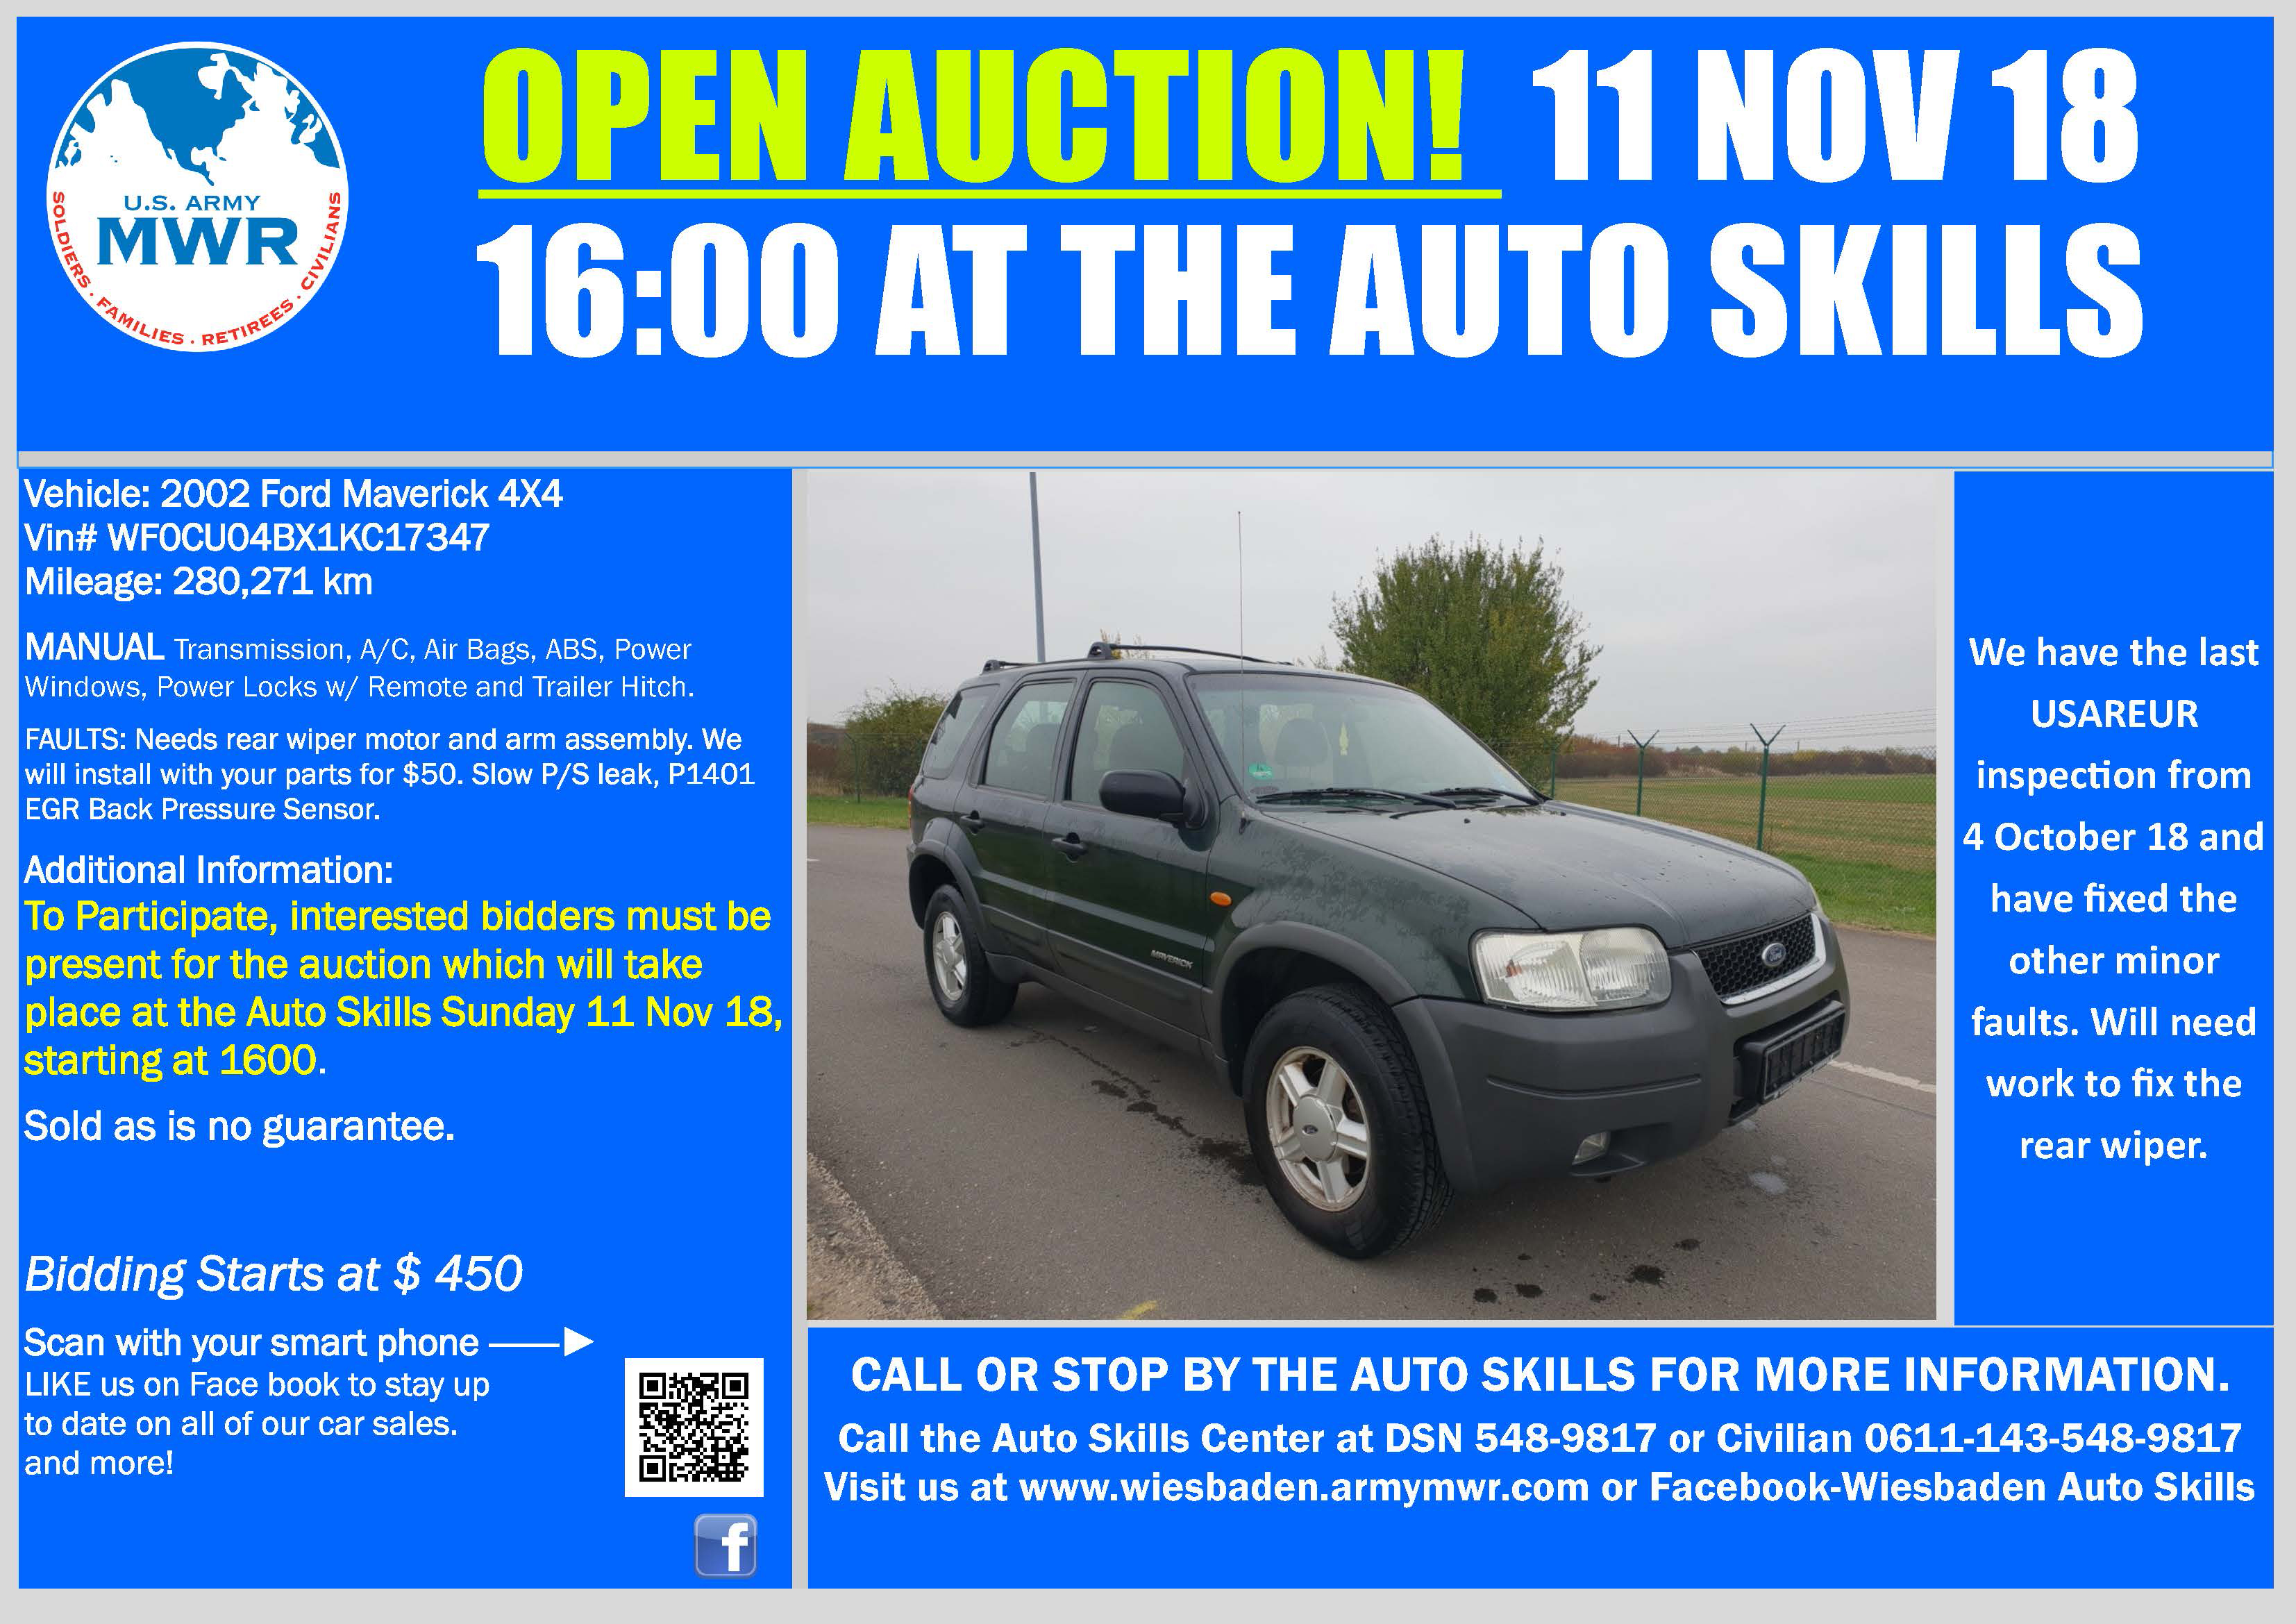 Sale Ford Maverick 11 Nov 18 Open Auction.jpg